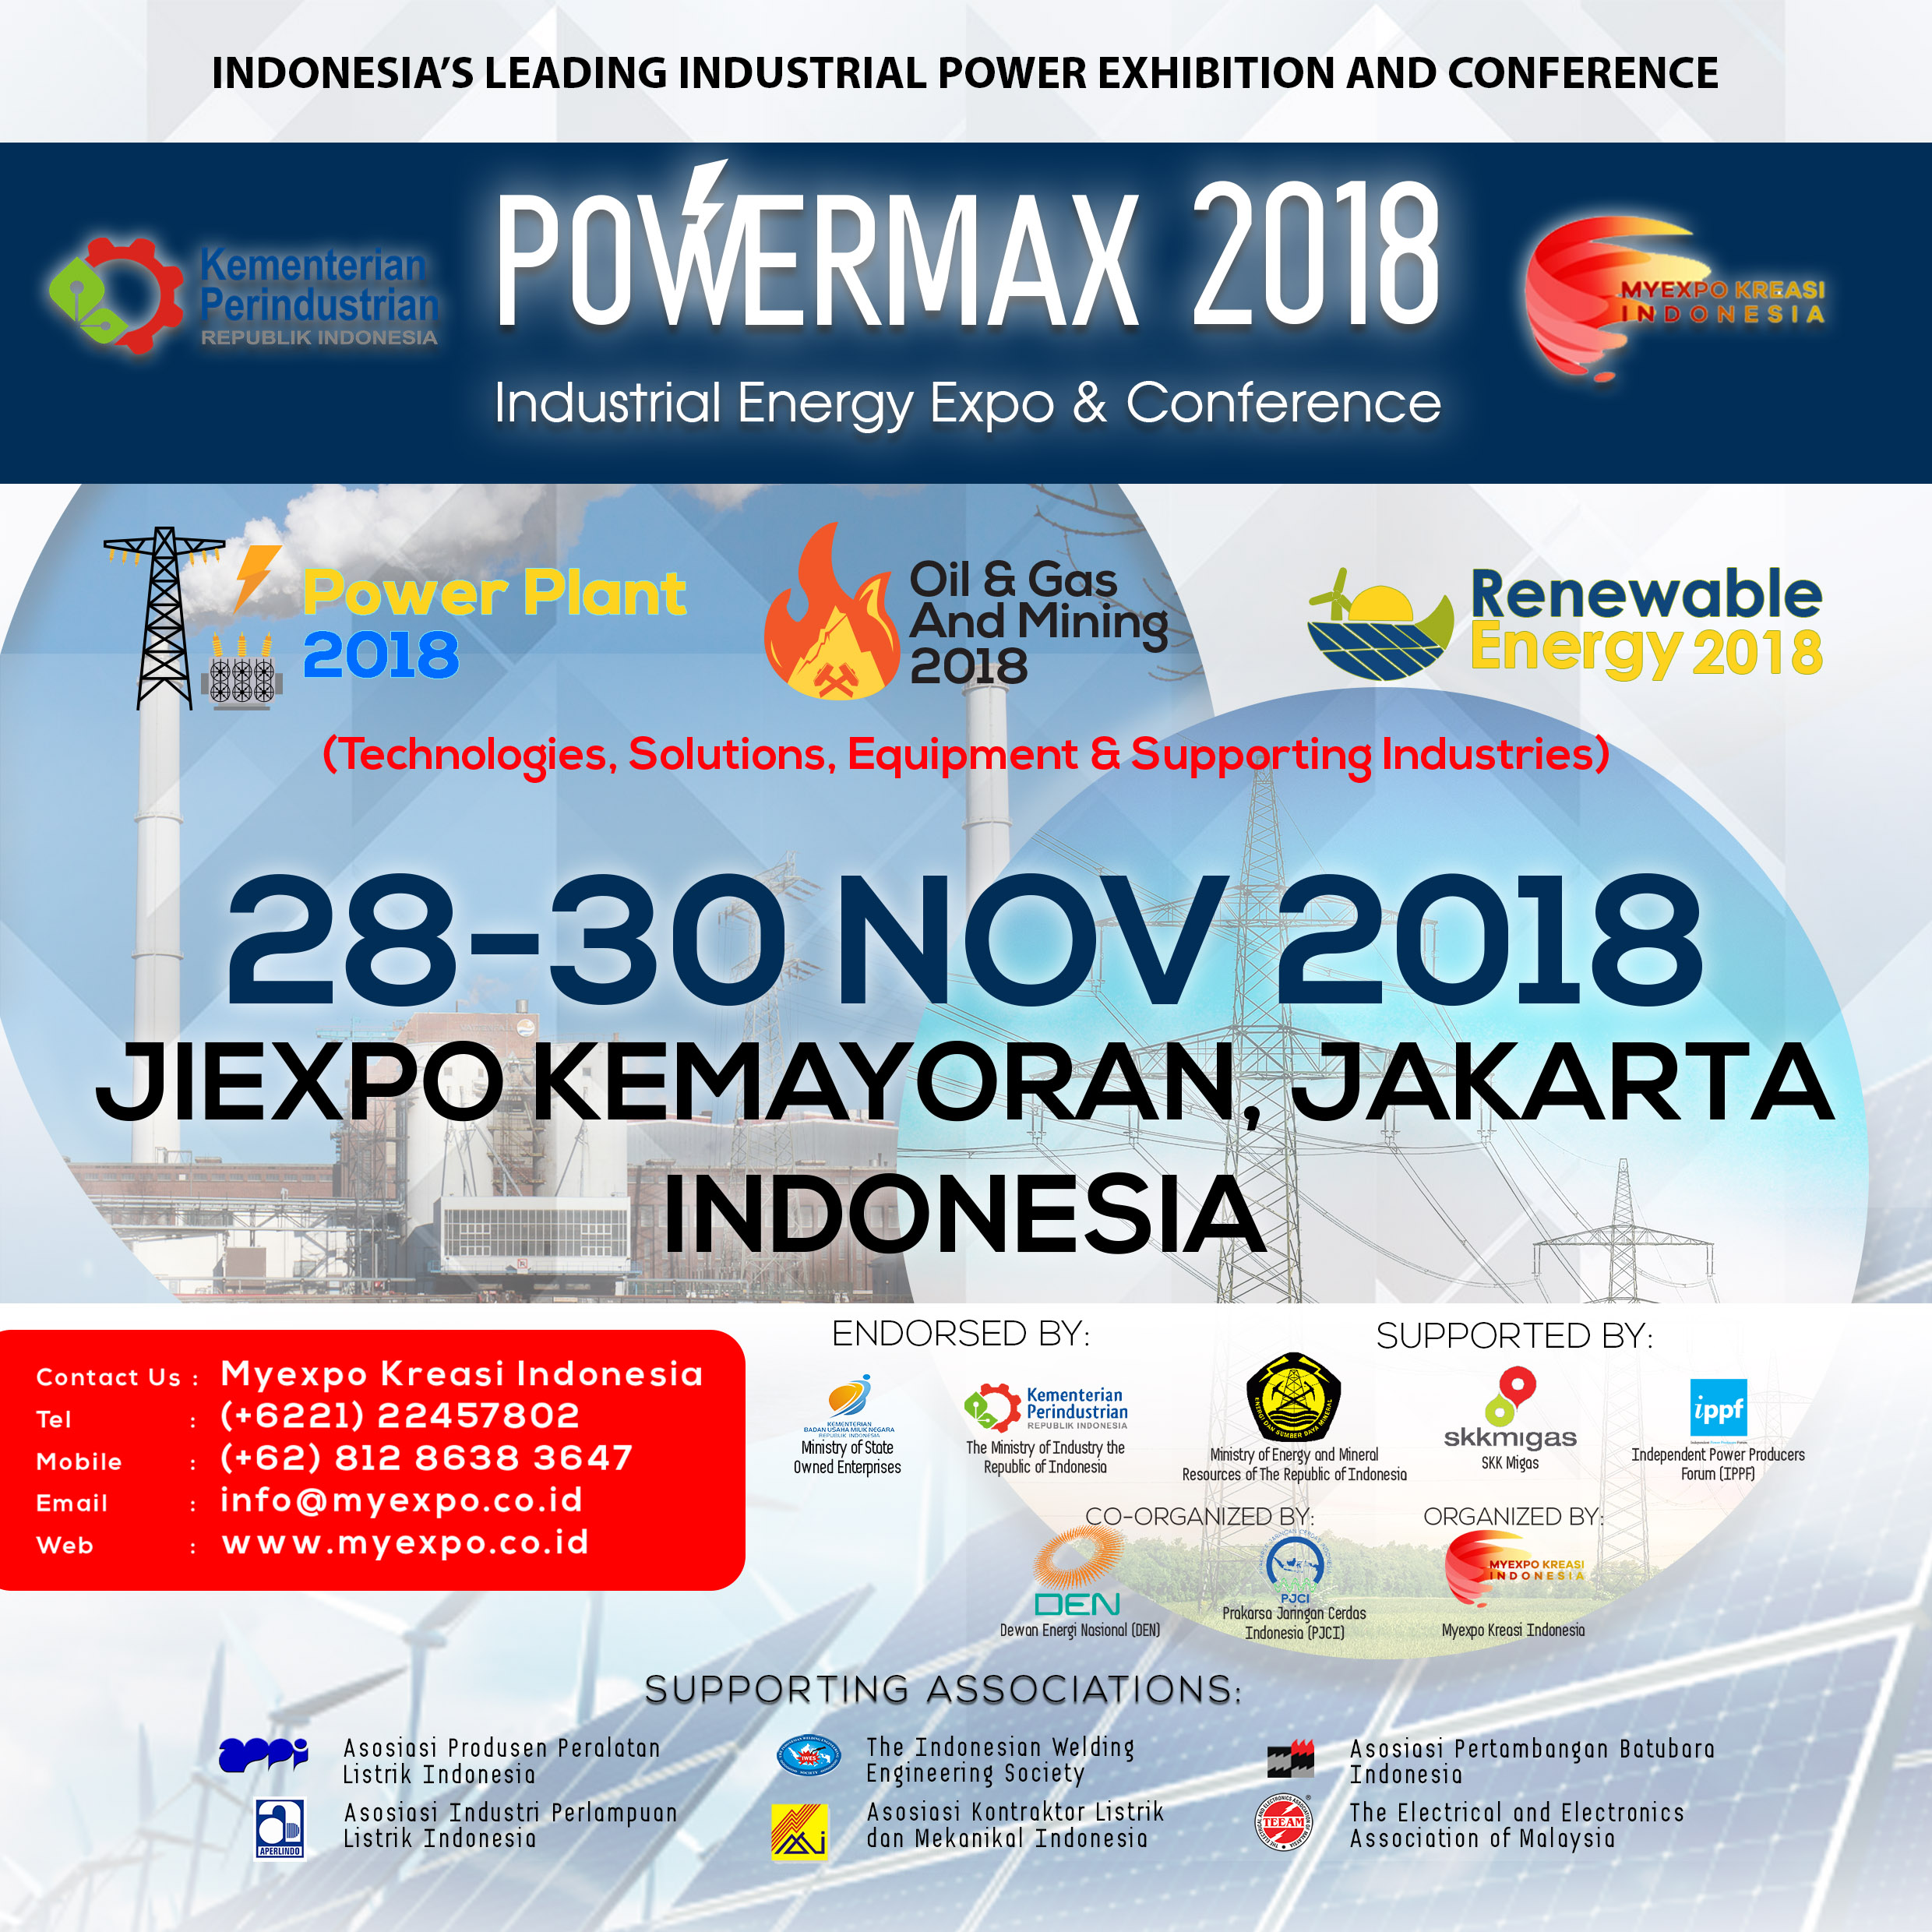 B2b Marketplace Pusat Distributor Direktori Supplier Tirai Benang Elegant Kwalitas Bagus Ampamp Sj0001 Industrial Energy Exhibition And Conference Powermax 2018